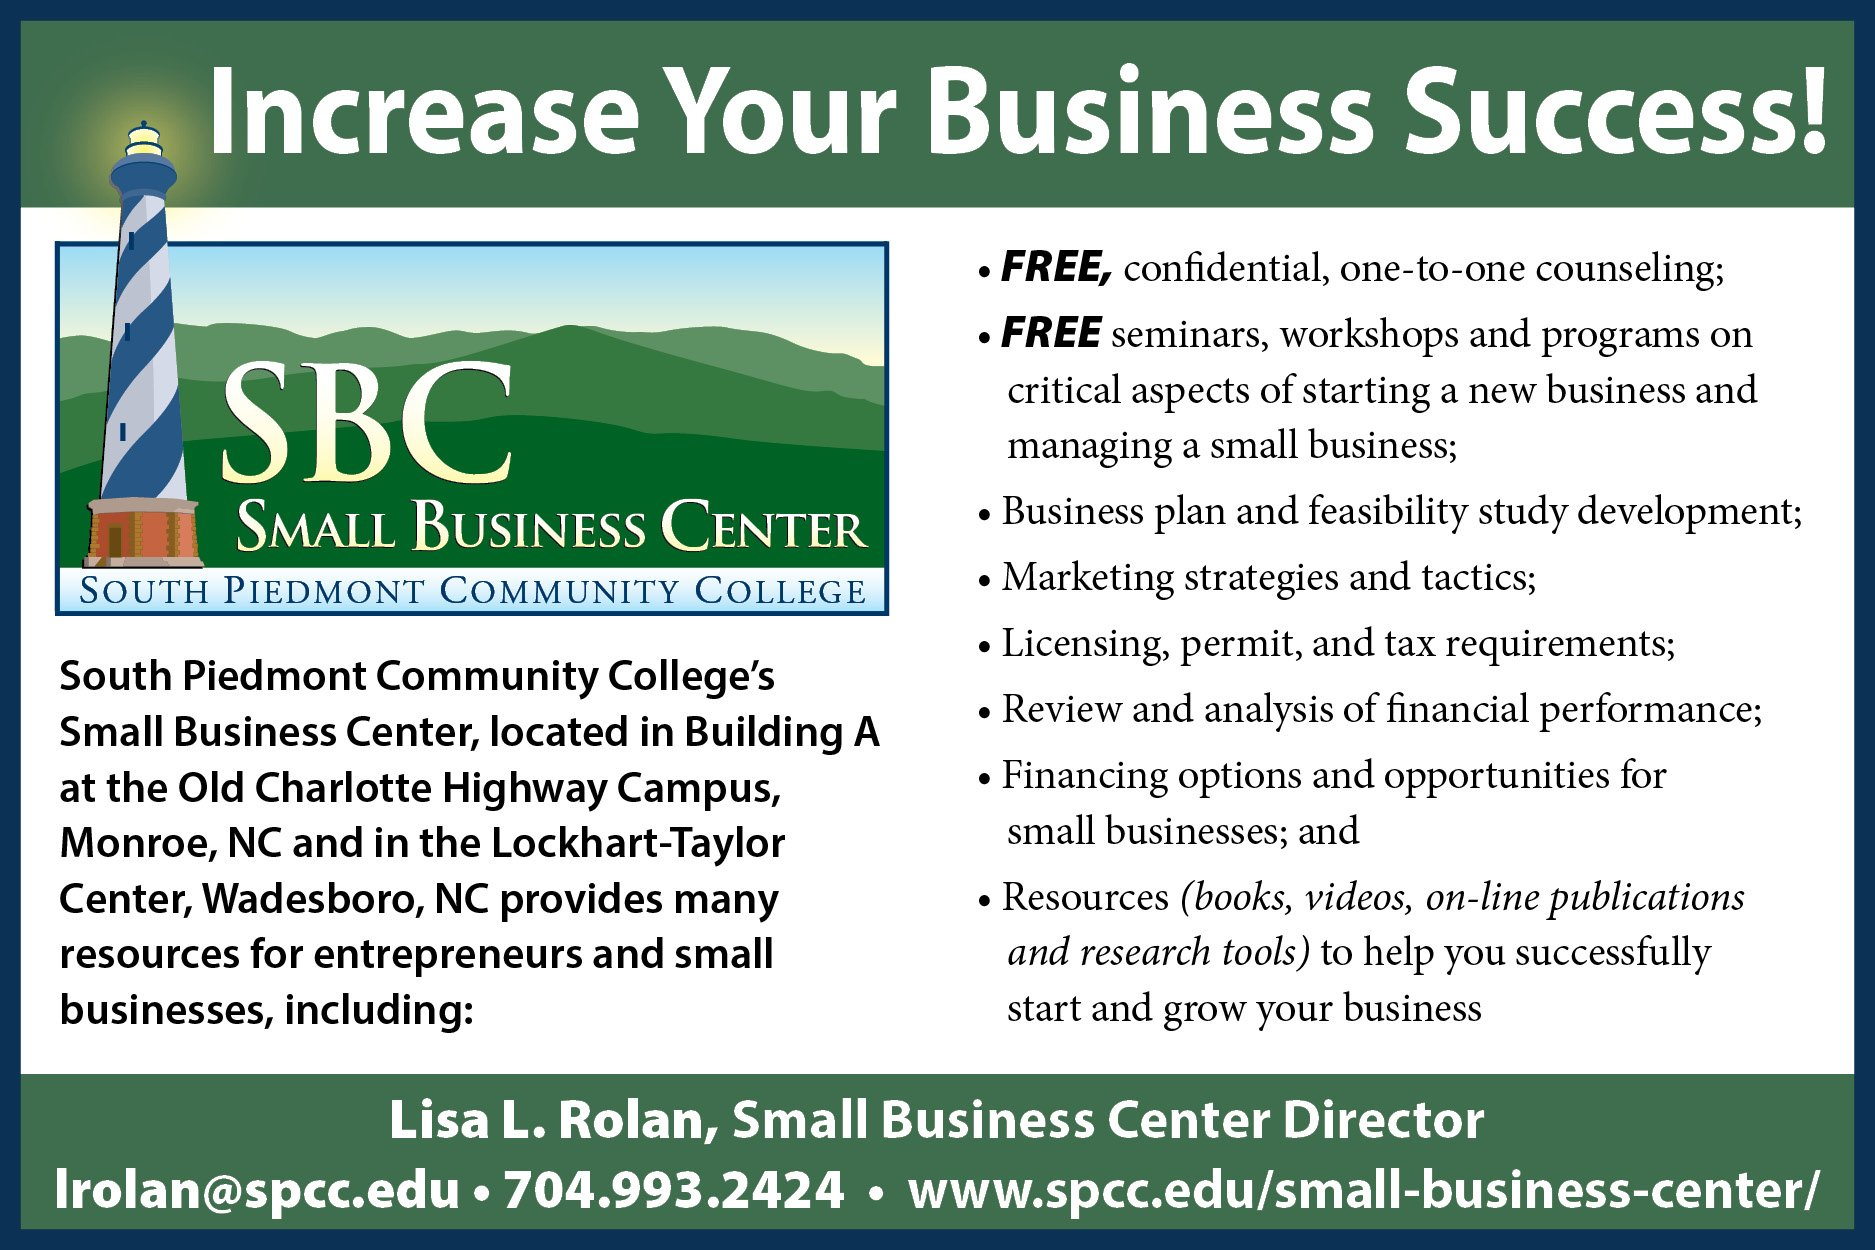 SBC Brochure Increase your Business Success Image